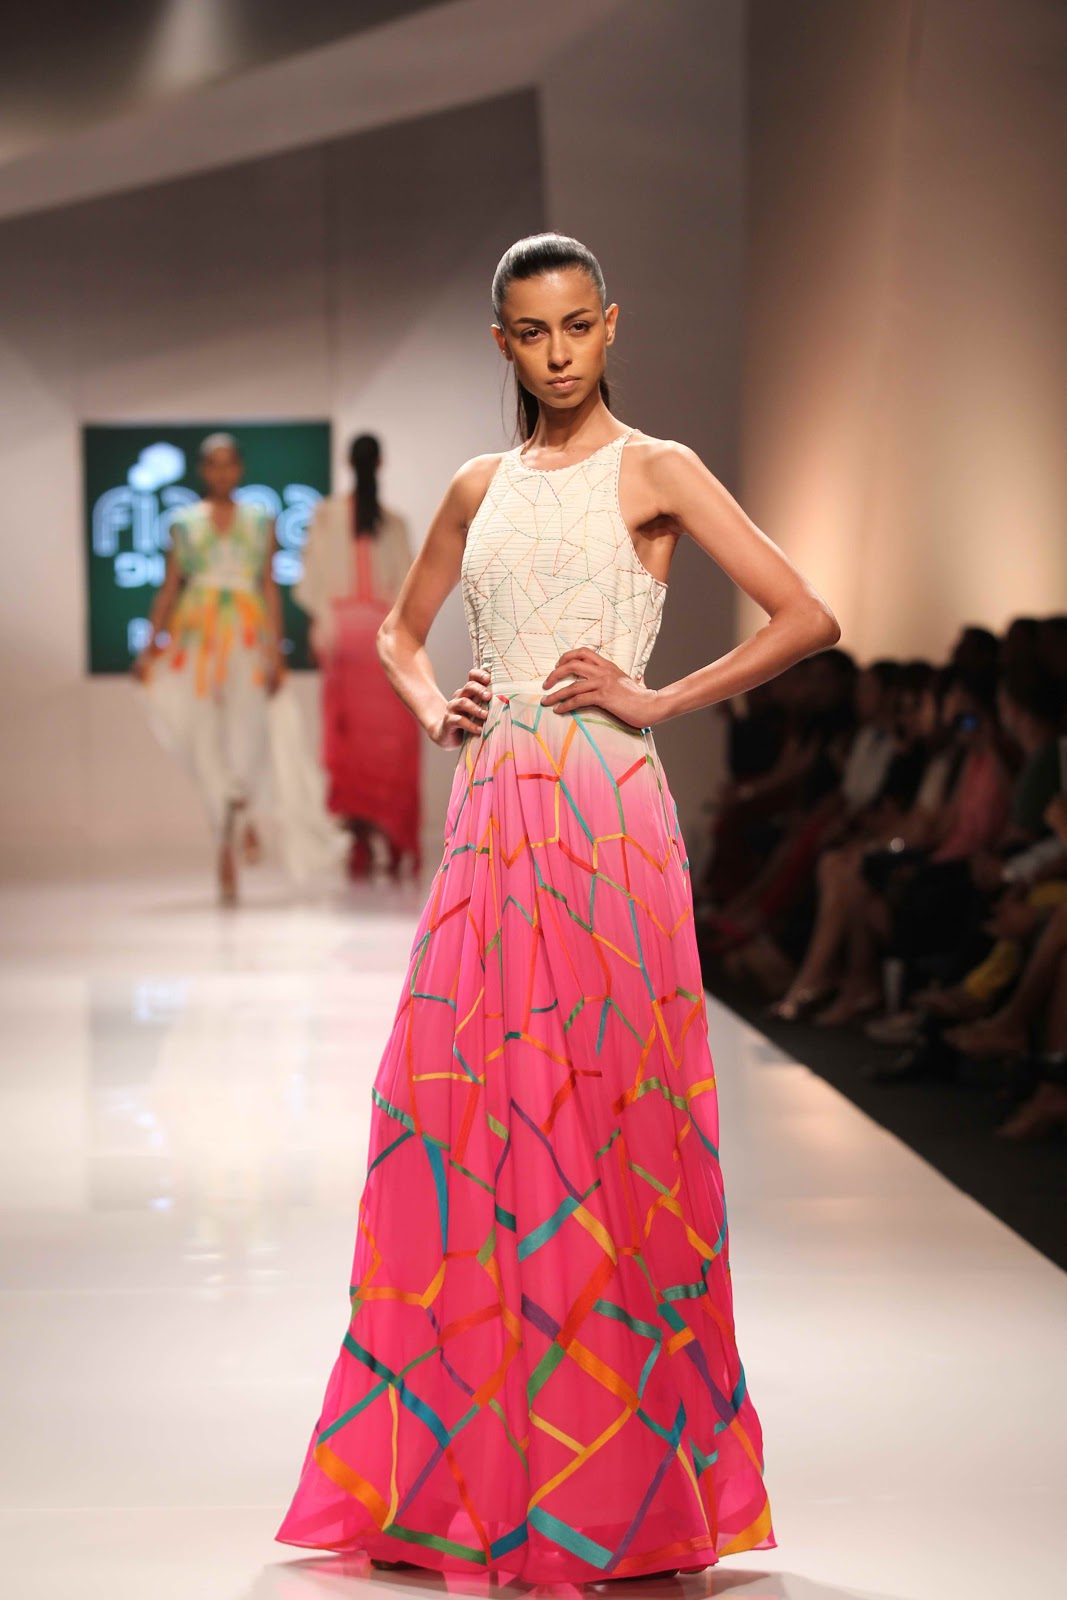 Indian beauty central ibc at fiama di wills presents exotica with ranna gill at wills Wills lifestyle fashion week